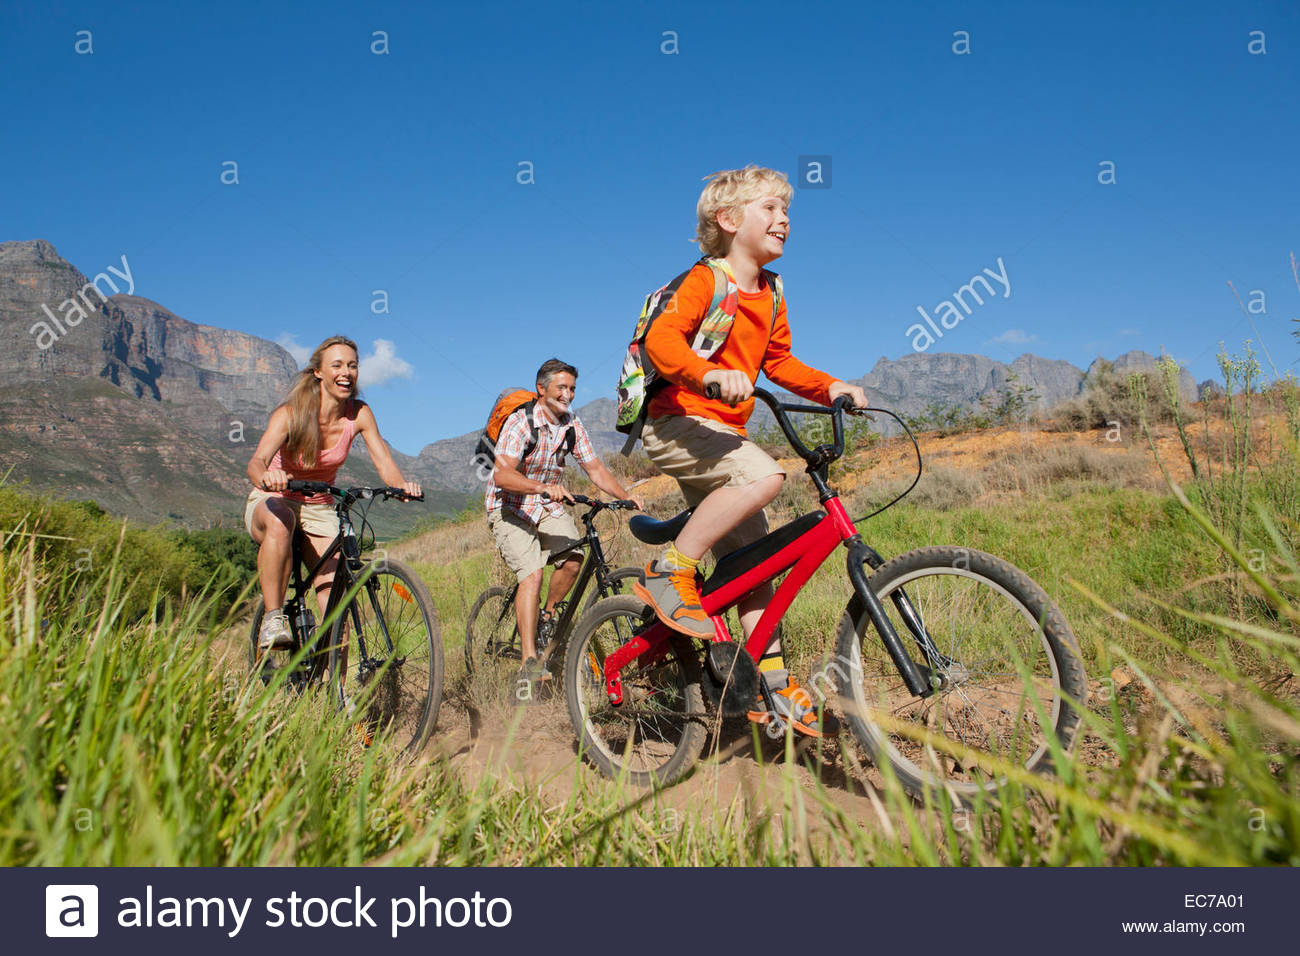 Family mountain biking on country track - Stock Image